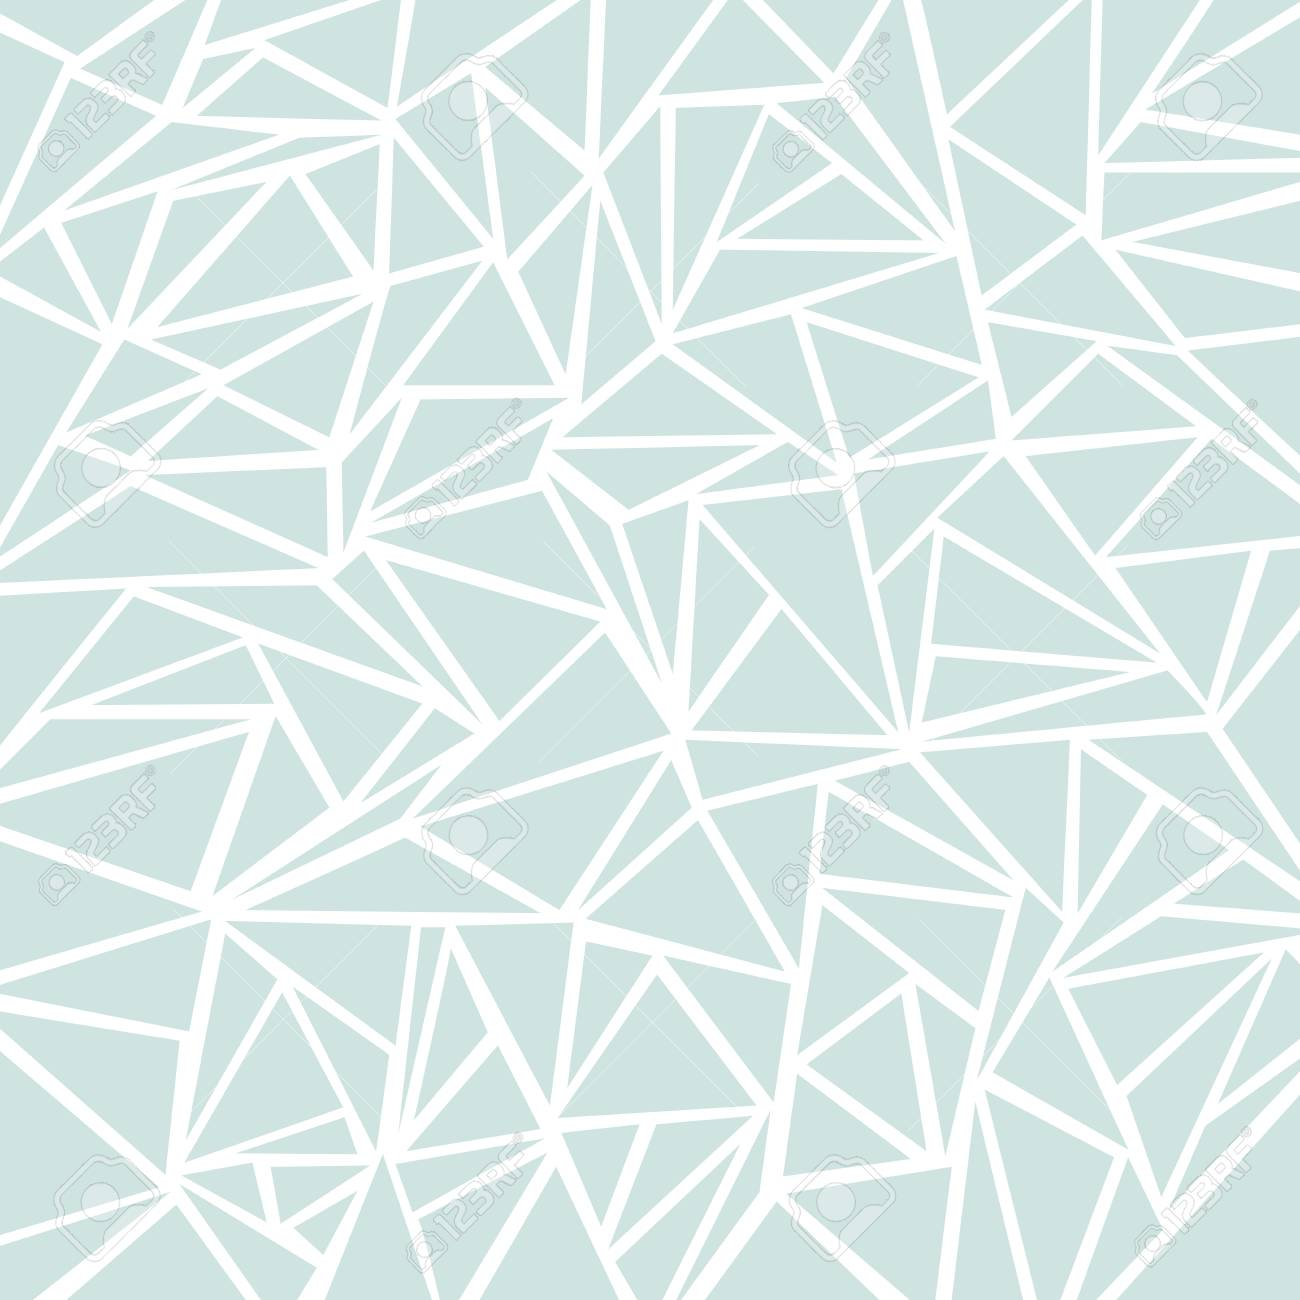 Abstract Light Blue Or Gray Geometric And Triangle Patterns For